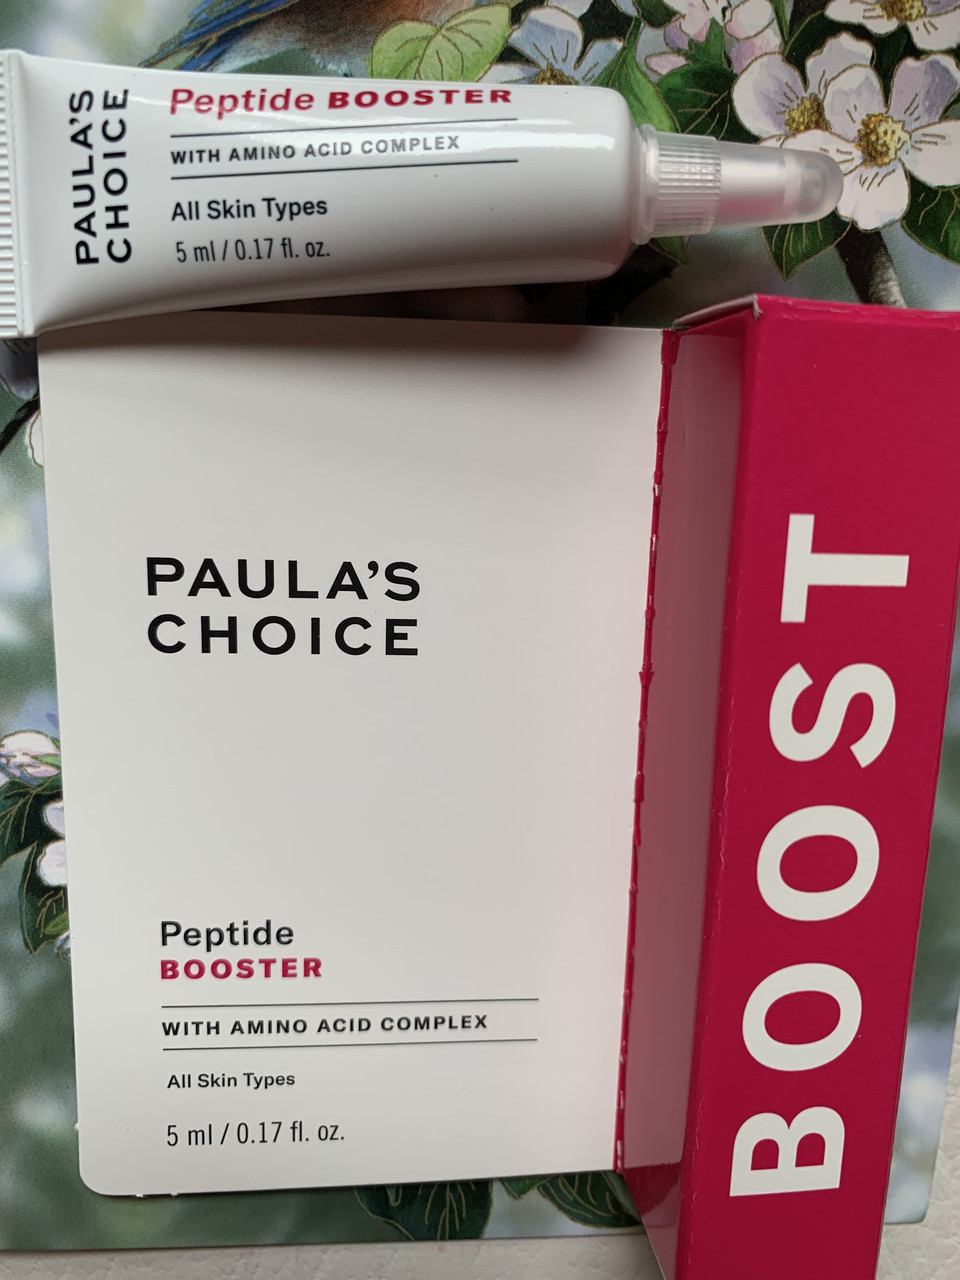 Пептид бустер для кожи лица PAULA'S CHOICE Peptide Booster